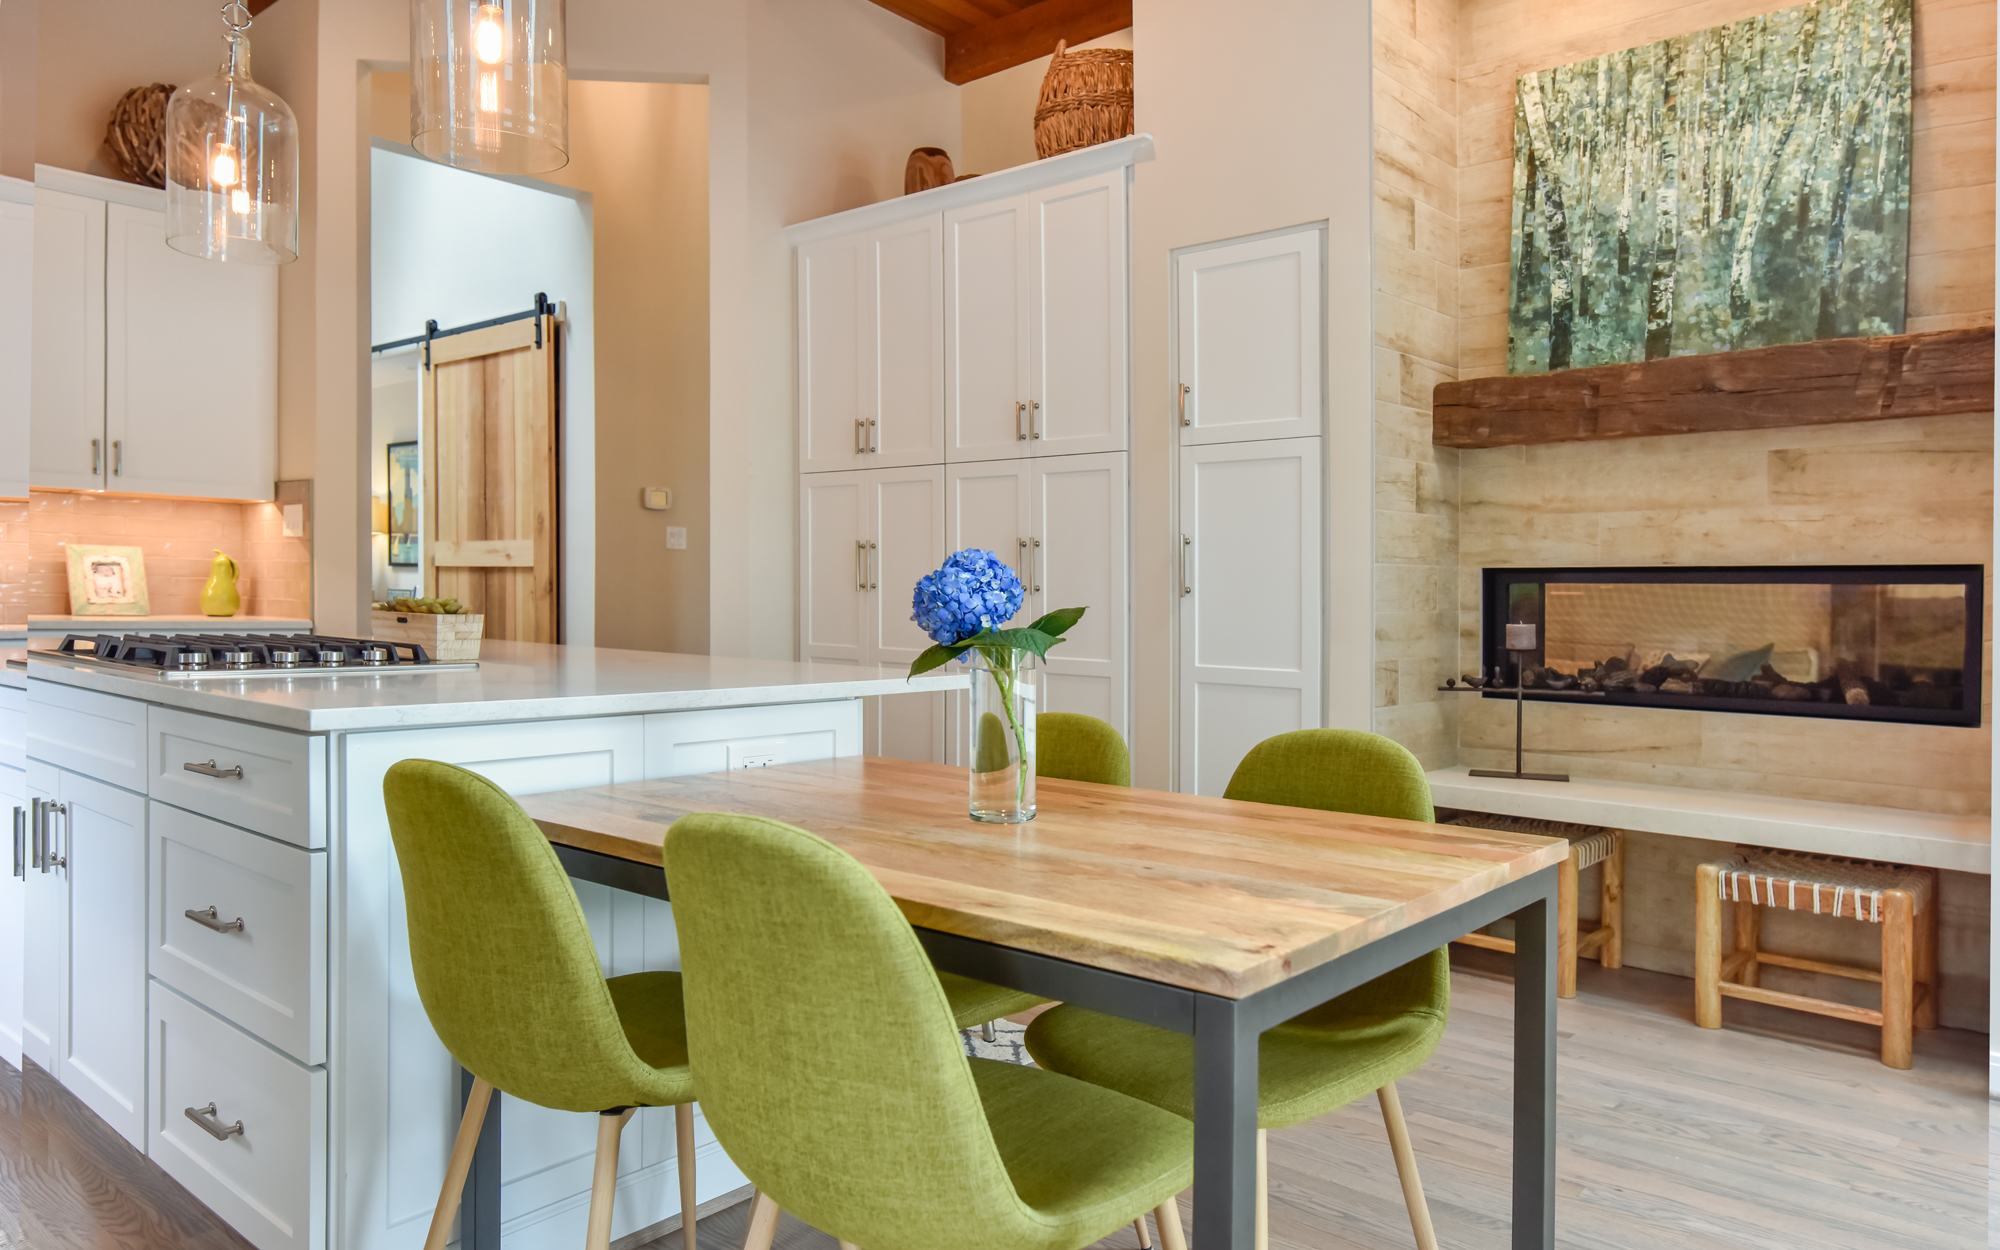 Please Sit Back, Relax And Enjoy Perusing This Gallery Of Our Recent Kitchen,  Breakfast Room And Dining Room Projects. Weu0027d Love To Hear From You If ...